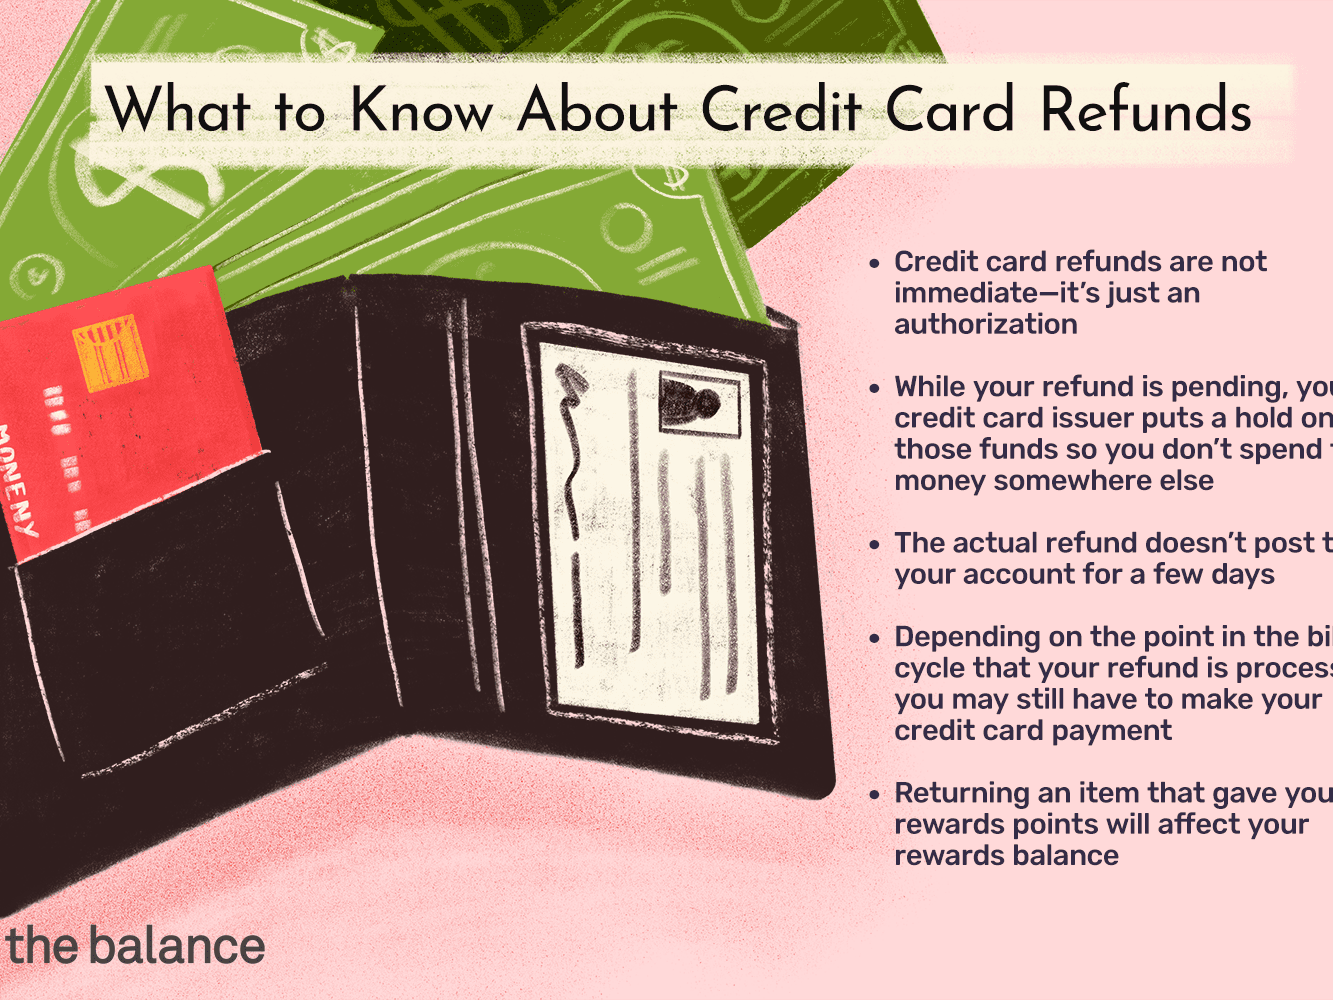 How Long Does A Credit Card Refund Take